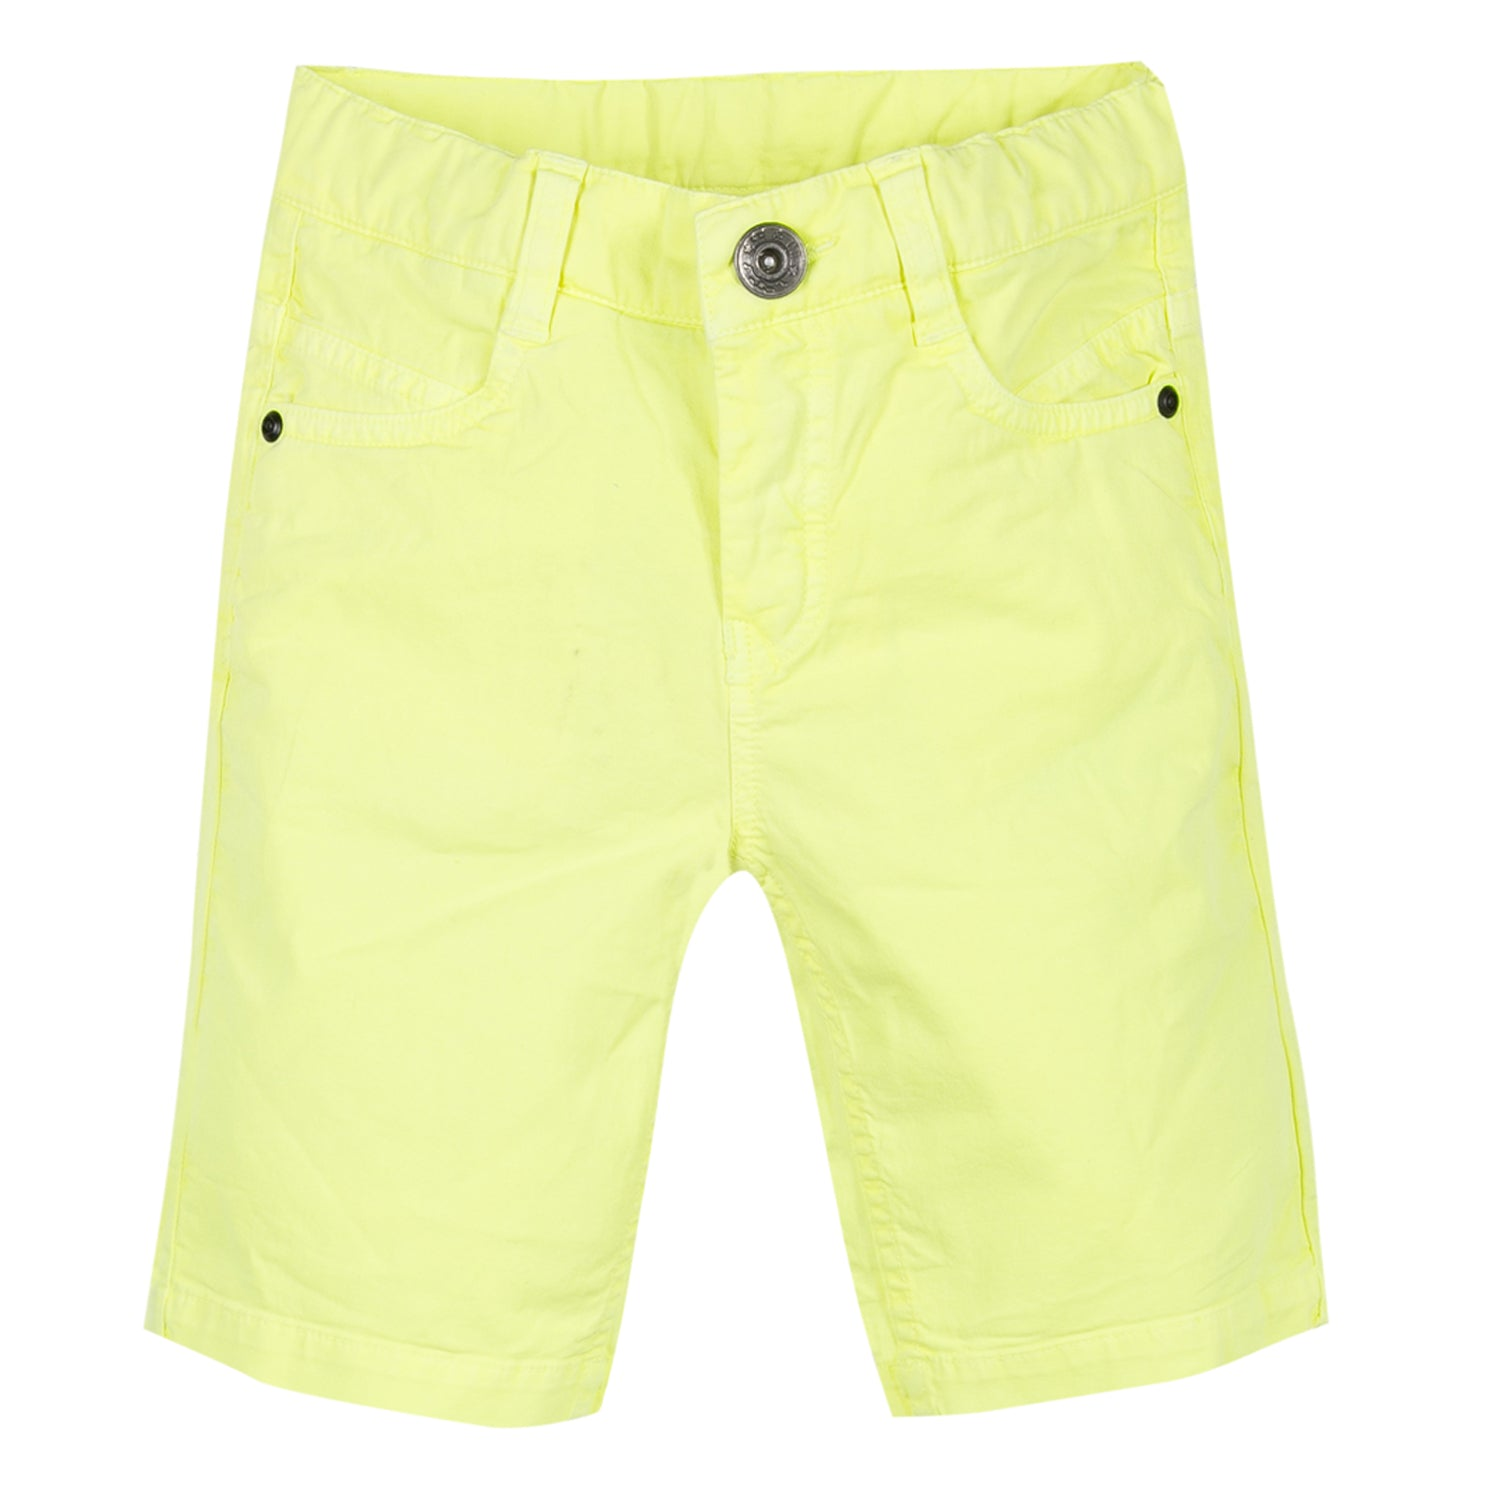 4f419f0c14 3Pommes Yellow Bermuda Shorts